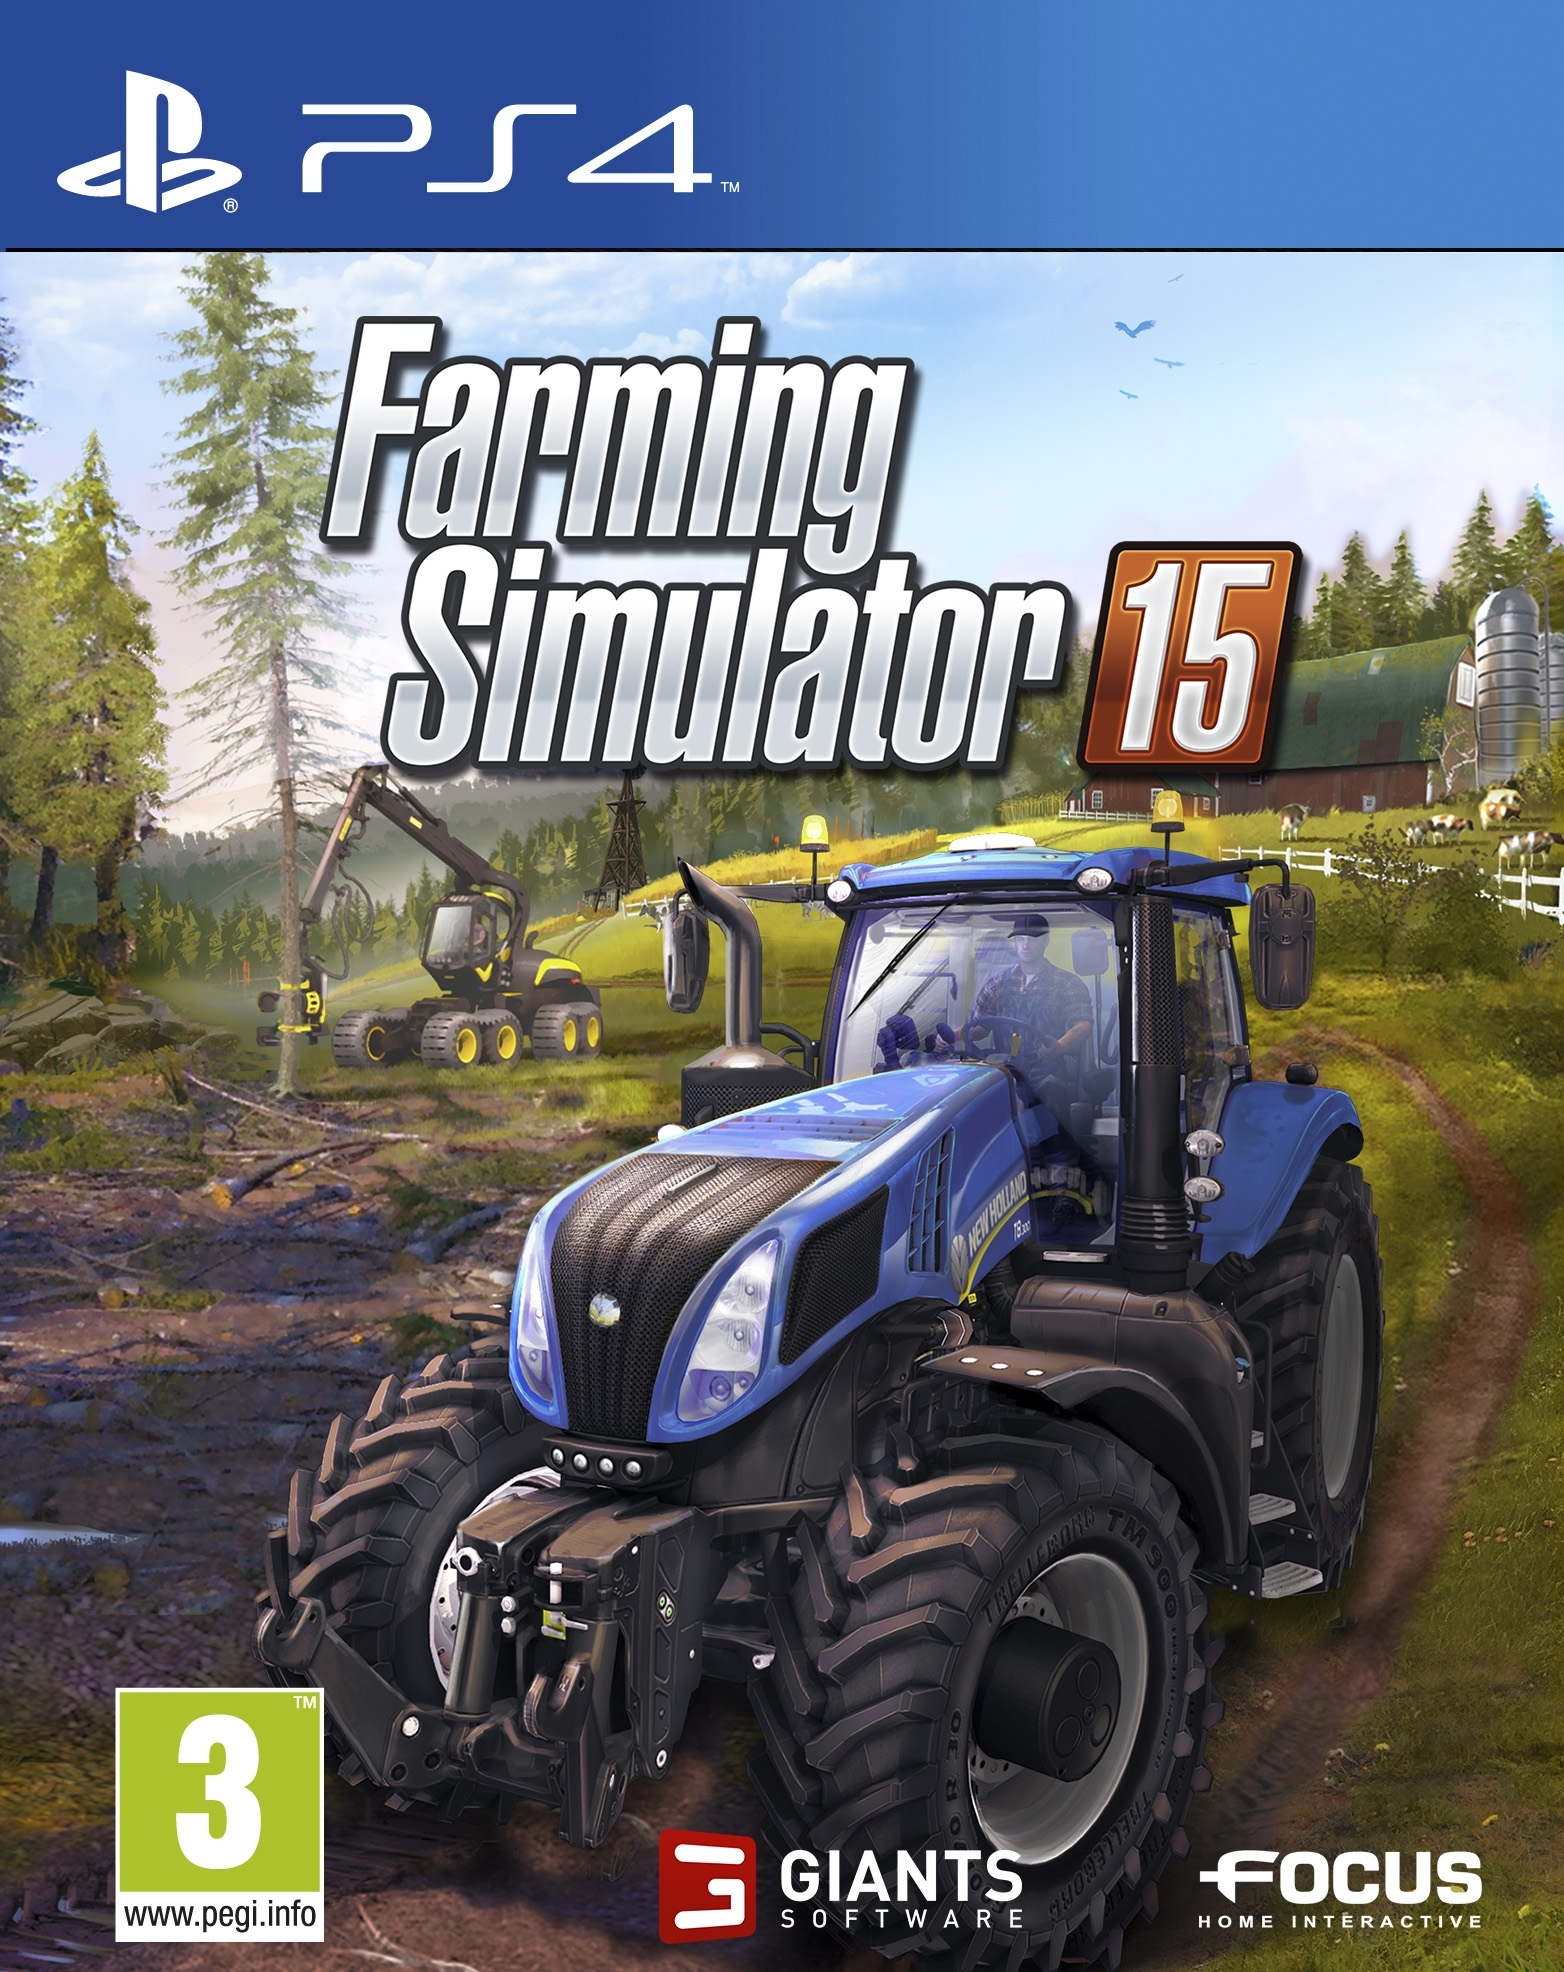 Symulator Farmy 15 Farming Simulator 15 2015 (PS4)